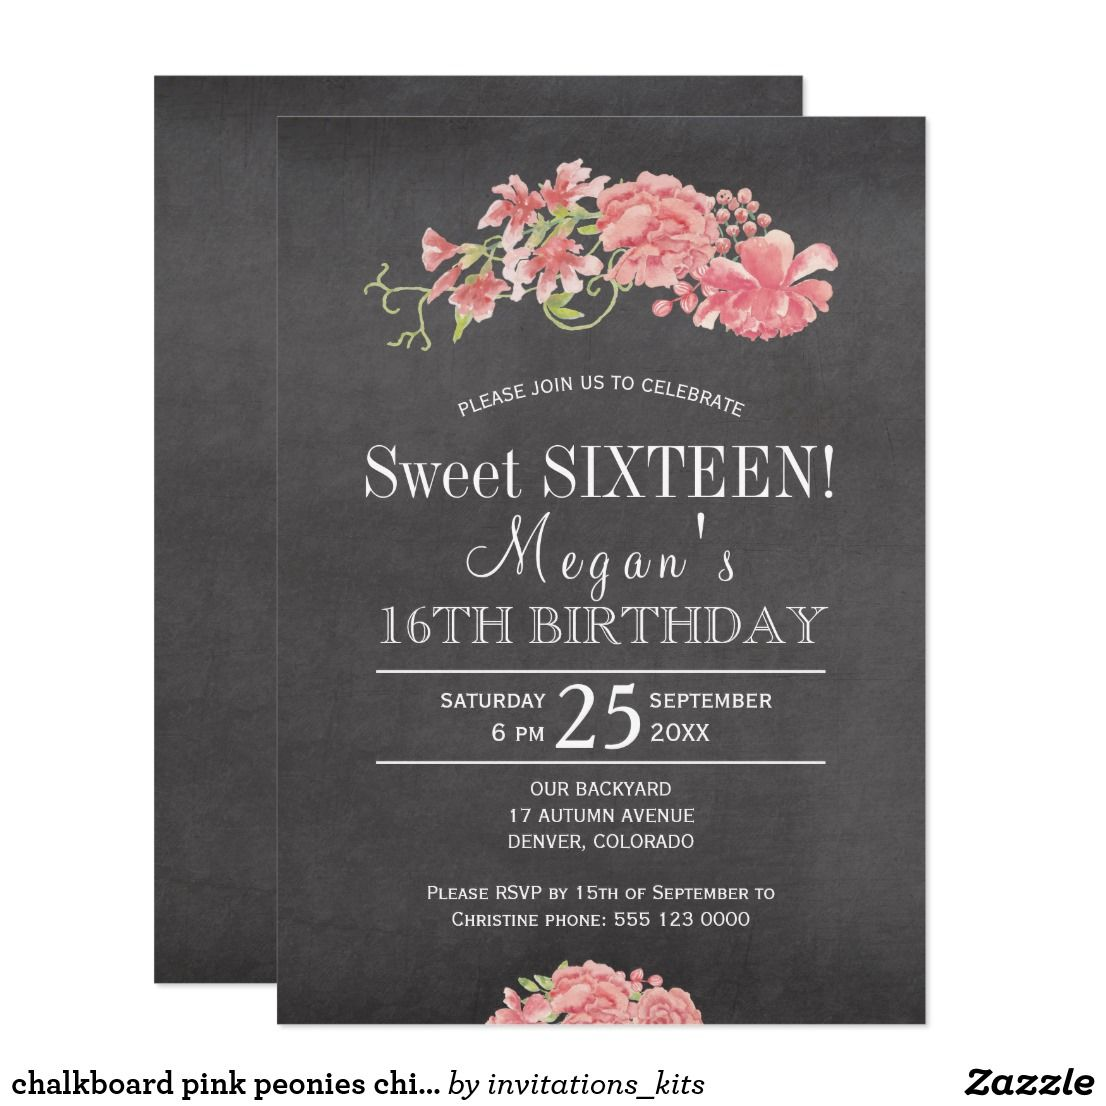 Chalkboard pink peonies chic floral sweet sixteen card | Party ...